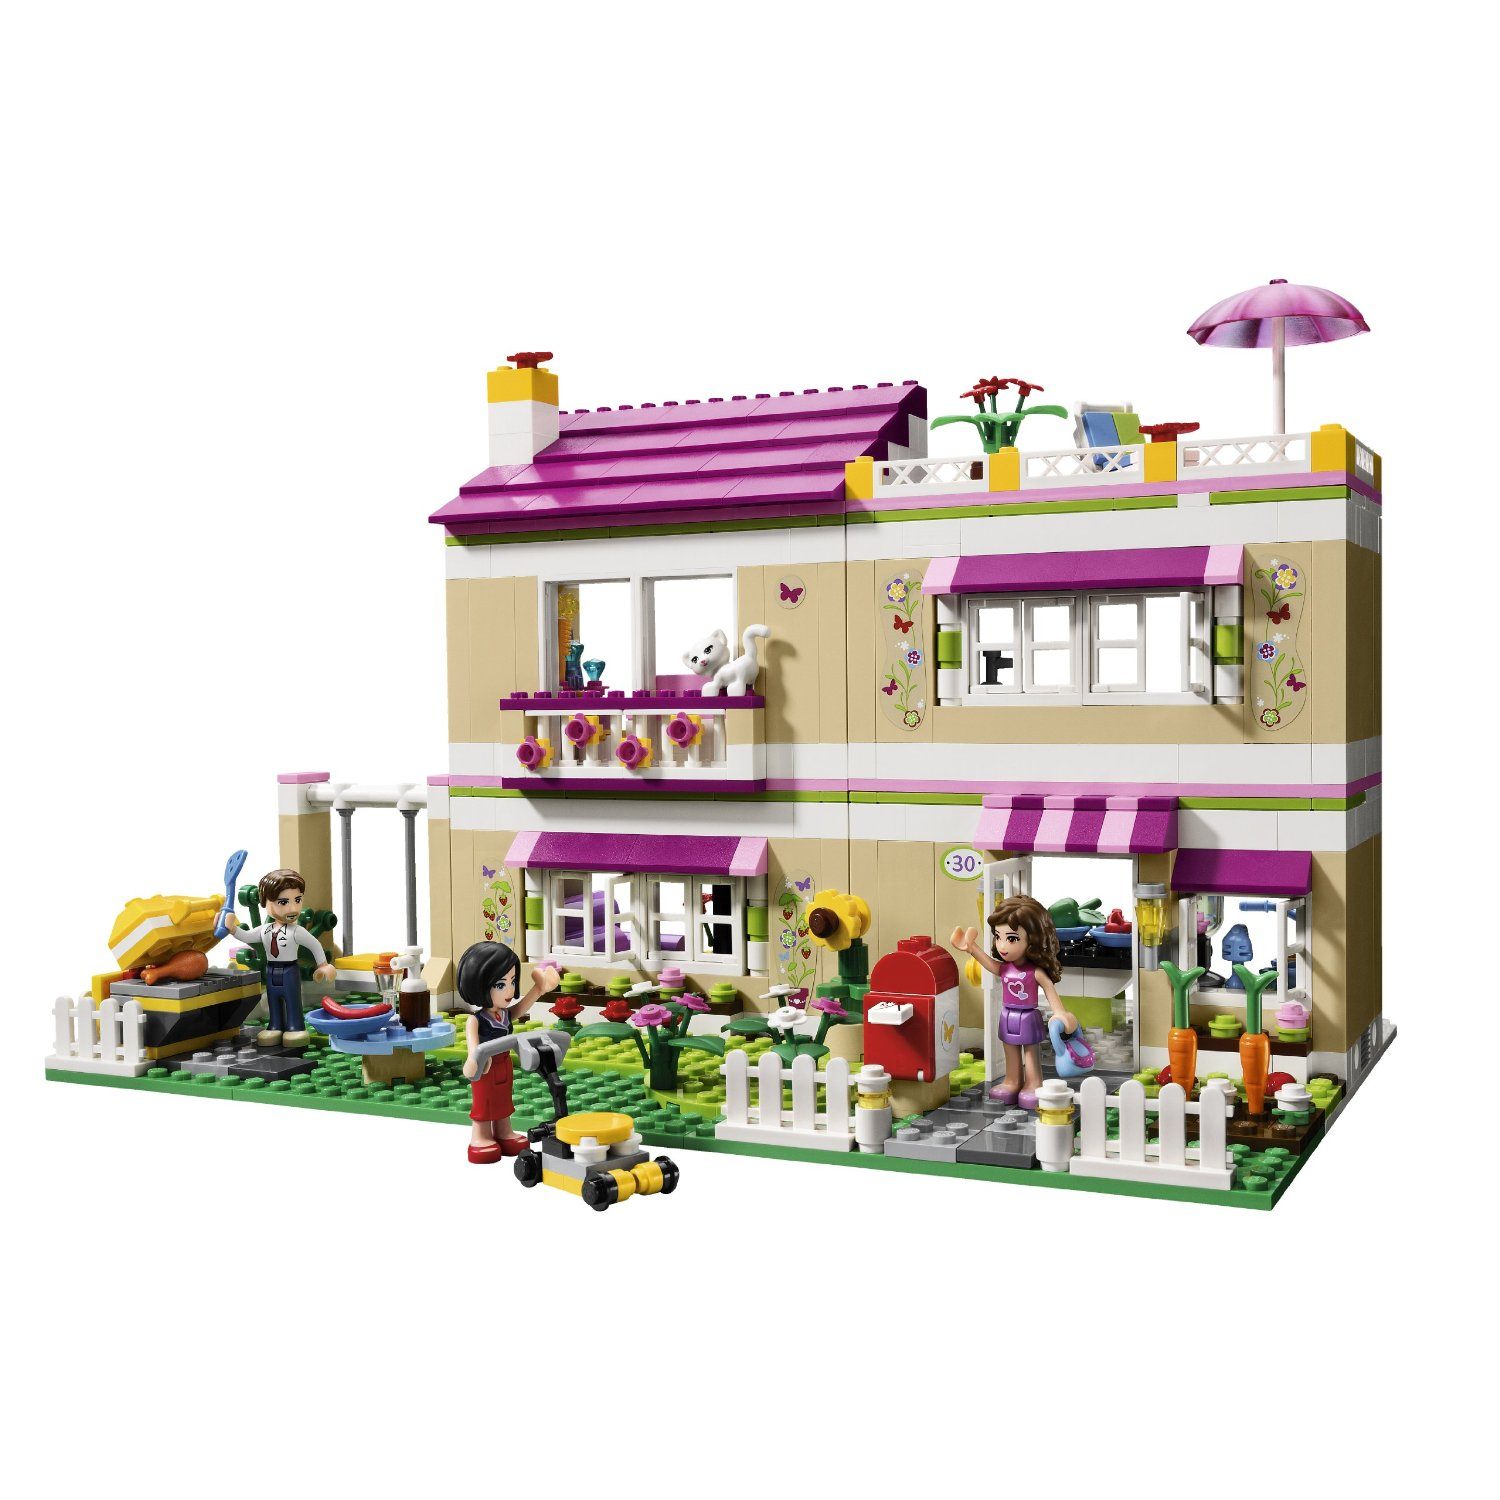 Lego clipart lego house Free House friends BBCpersian7 collections